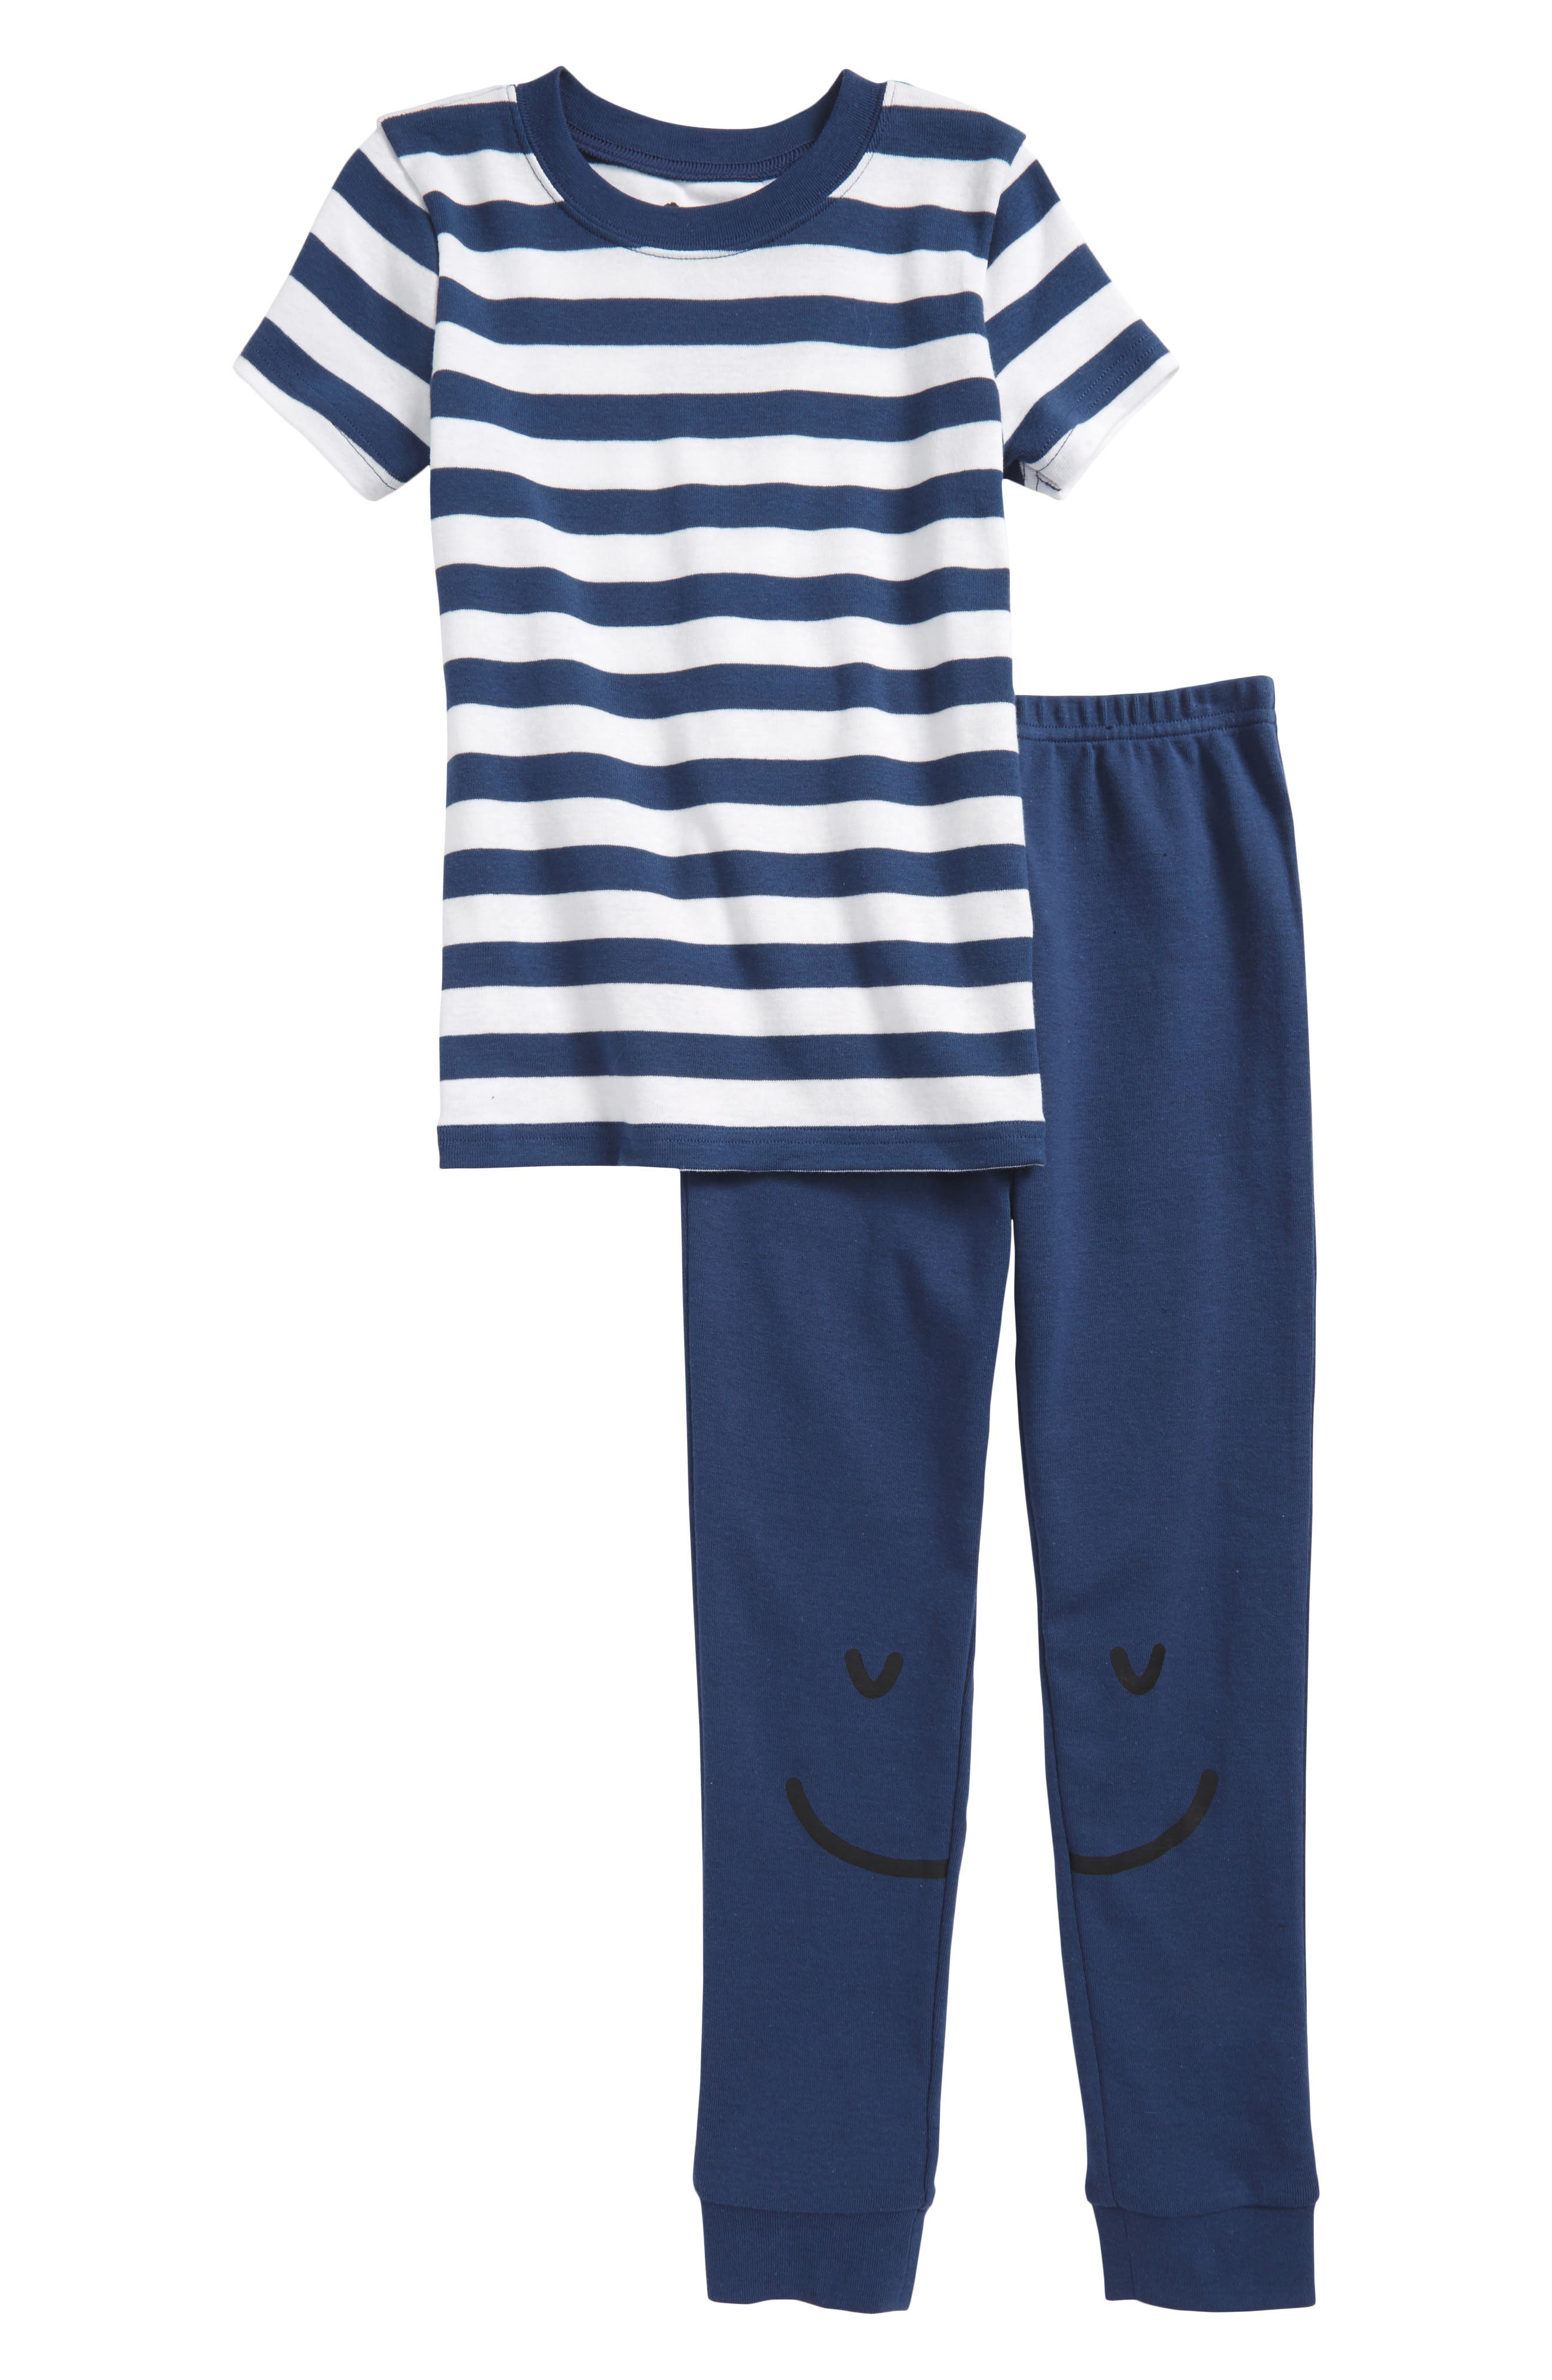 Print Fitted Two-Piece Pajamas,                             Main thumbnail 1, color,                             Navy Denim- White Stripe